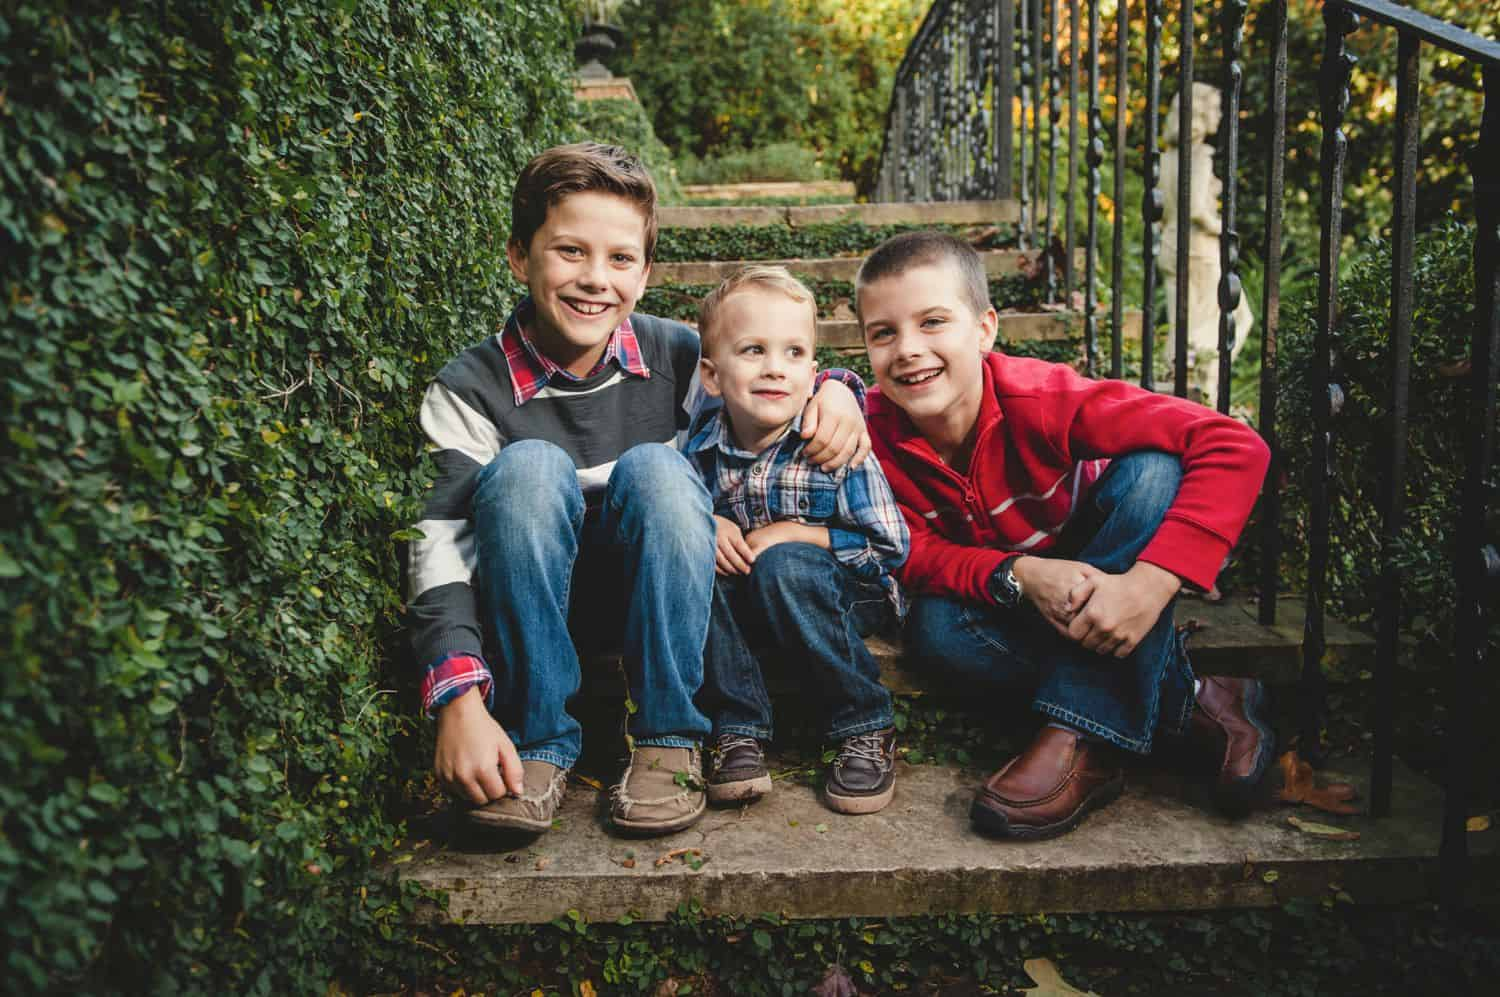 Three brothers sit together in concrete steps surrounded by ivy.